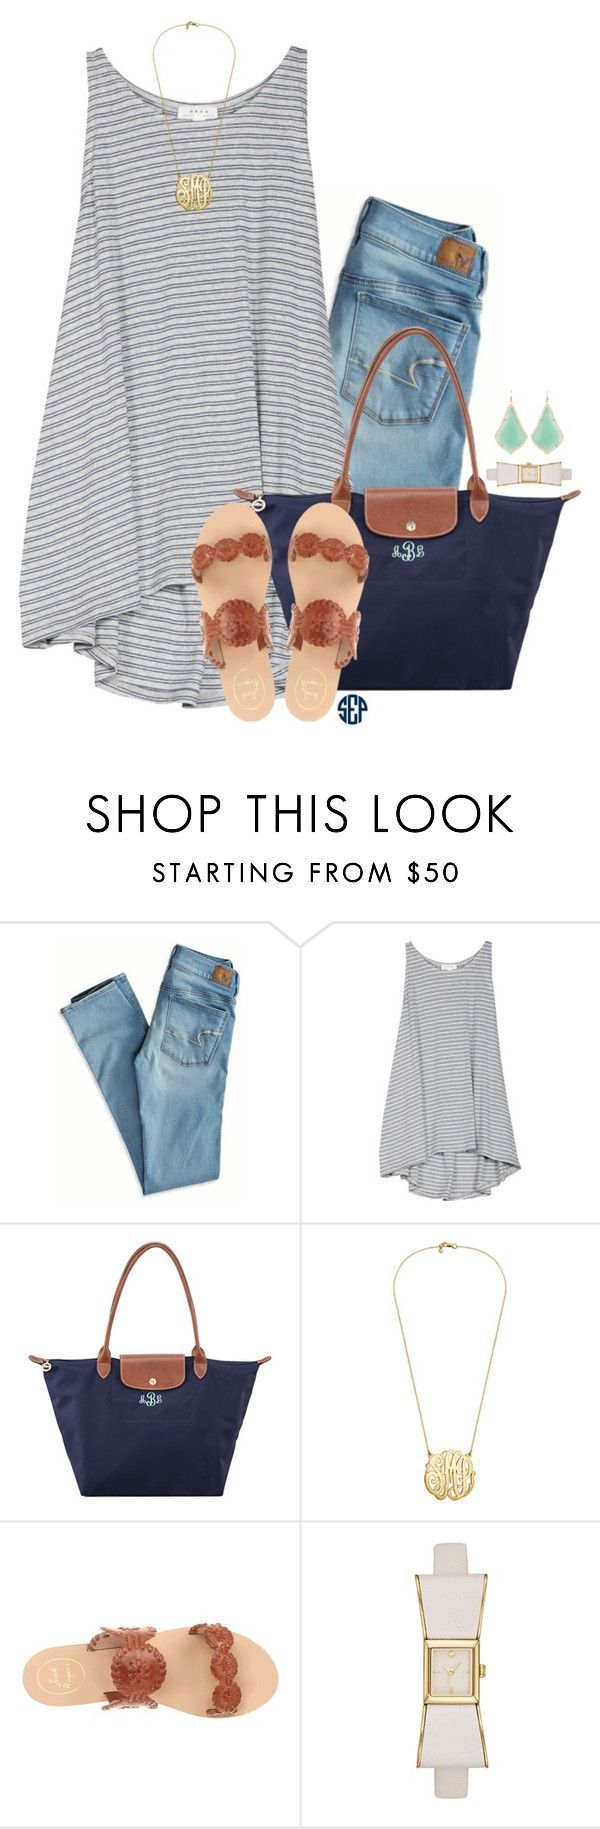 """Read the description it is my contest!!!"" by thedancersophie ❤ liked on Polyvore featuring American Eagle Outfitters, Soft Joie, Longchamp, Jack Rogers, Kate Spade, Kendra Scott and sophiesislandvacation"